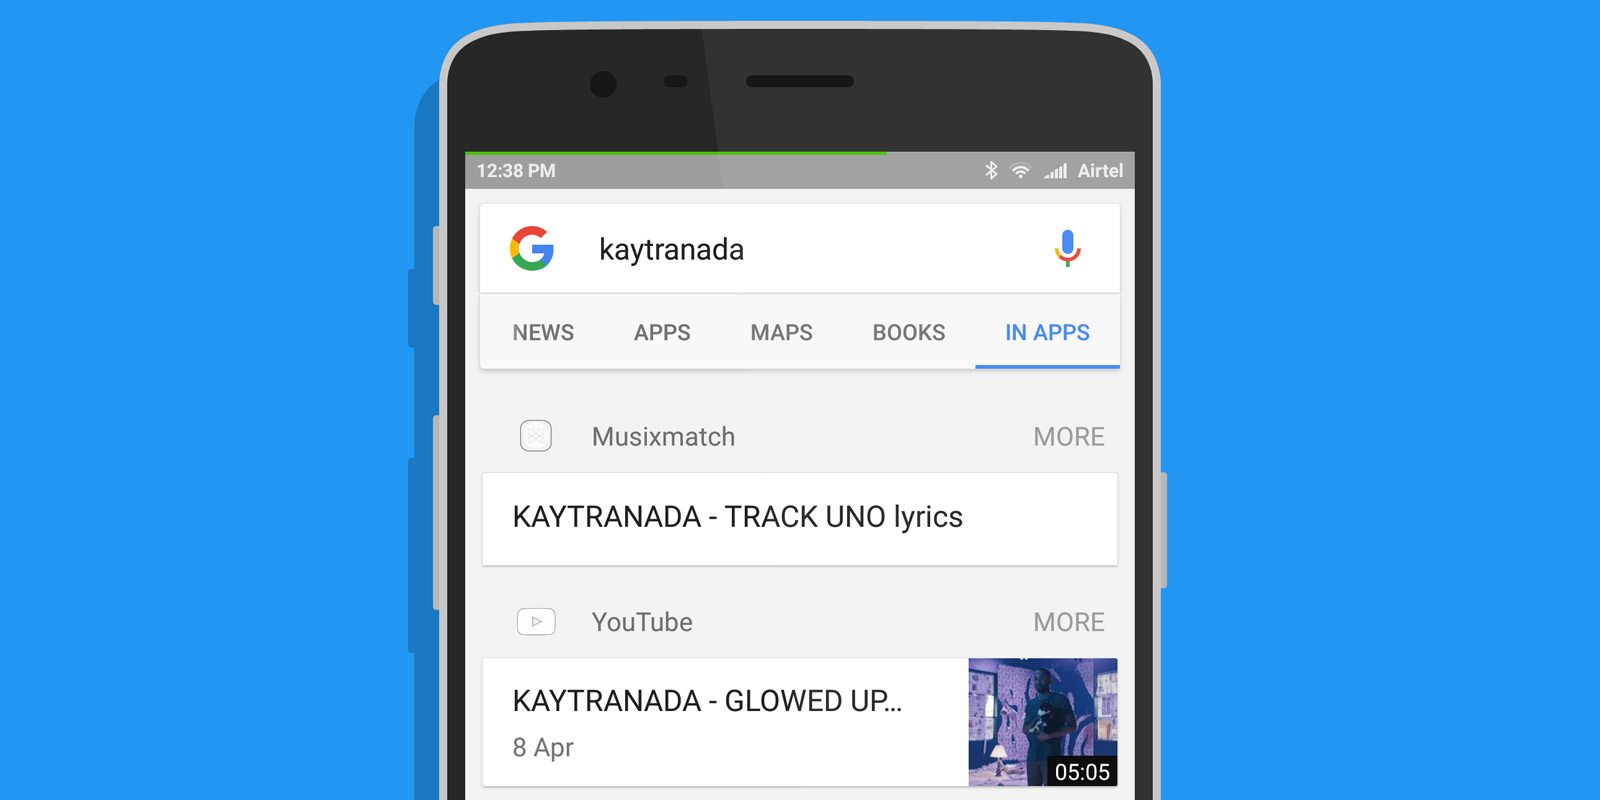 Google's new search mode surfaces results from Android apps